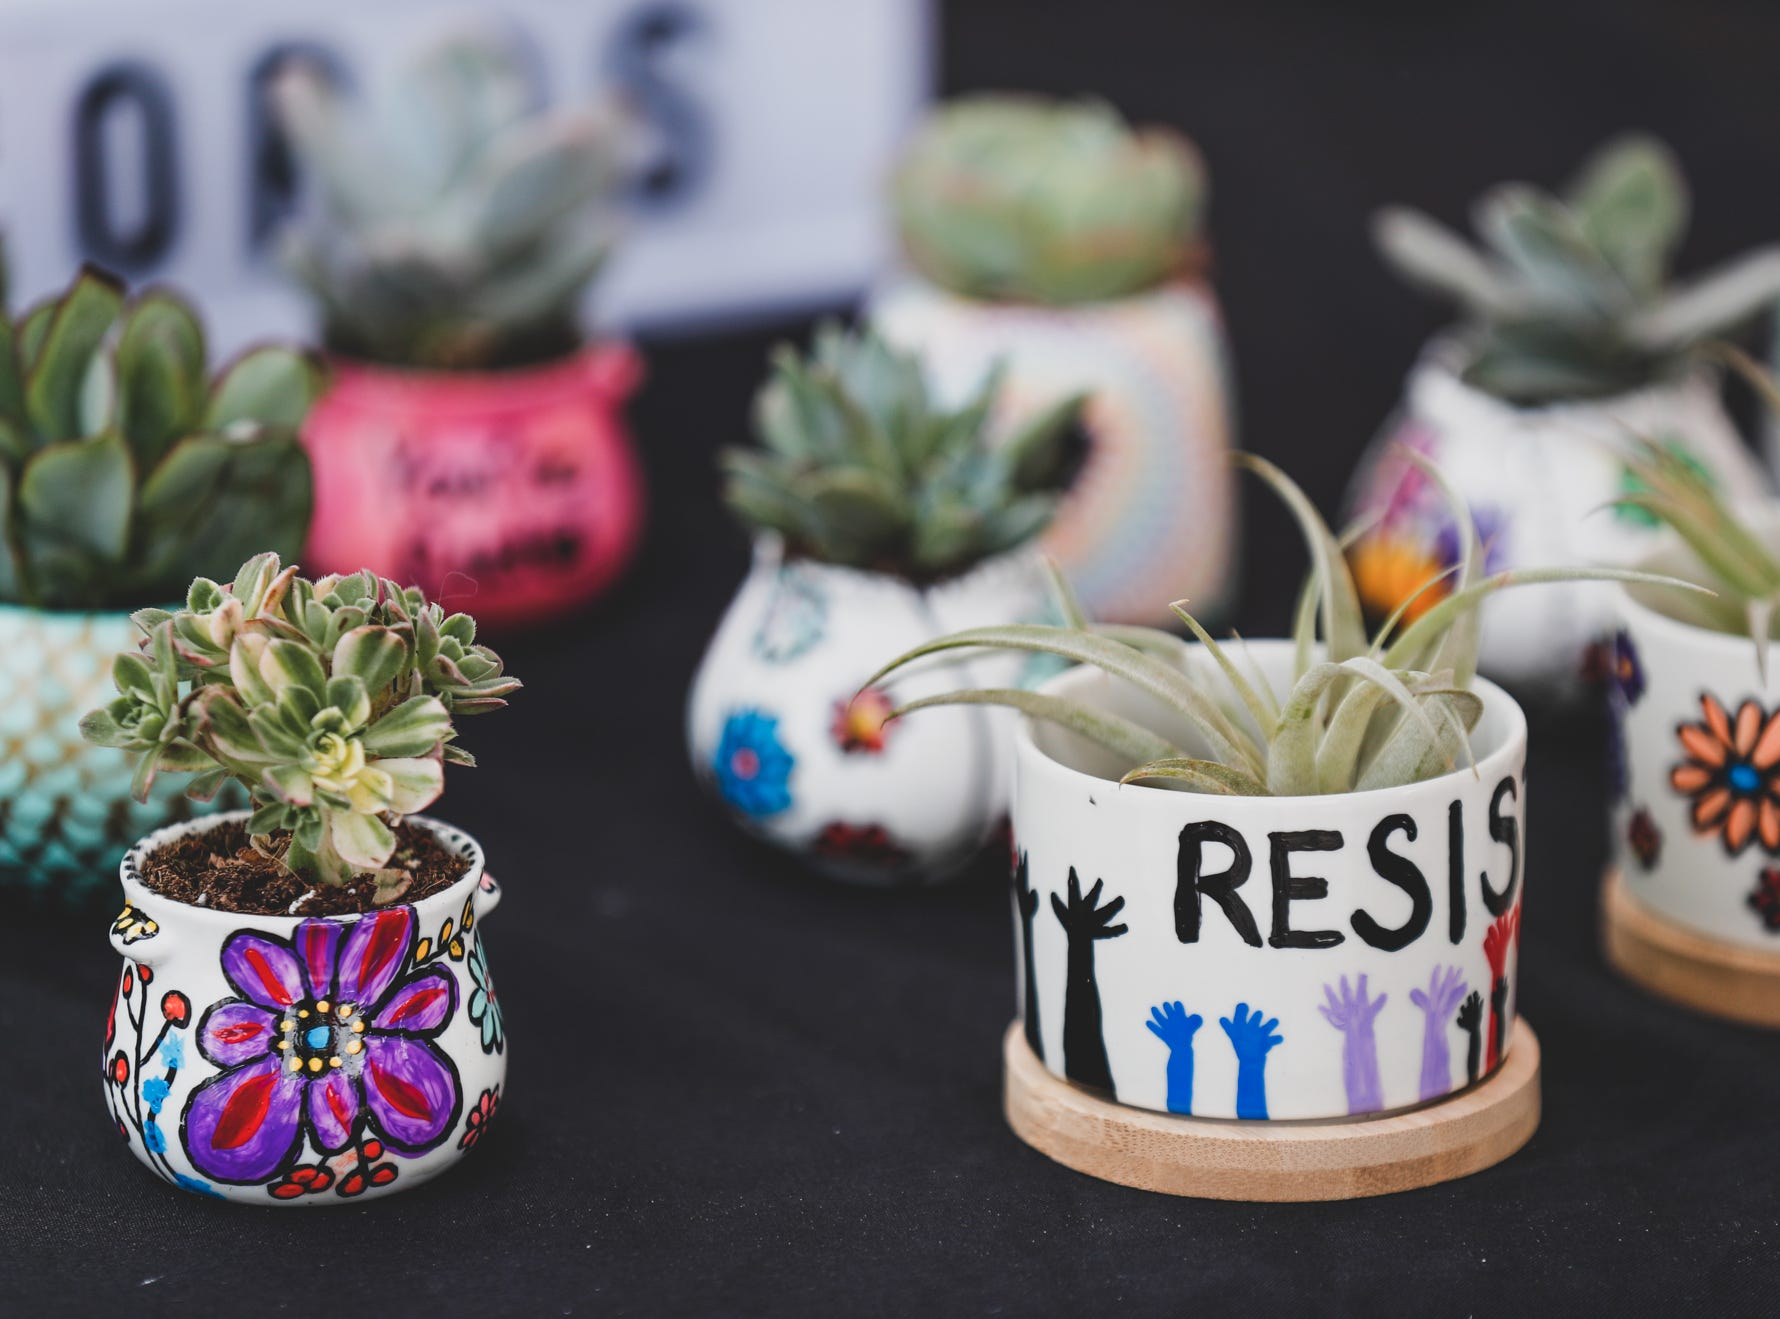 Ceramic planters are for sale in the Hippy Nerd Creations booth, during the Virginia Avenue Music Fest, held in Fountain Square, located in Indianapolis, on Saturday, May 11, 2019.